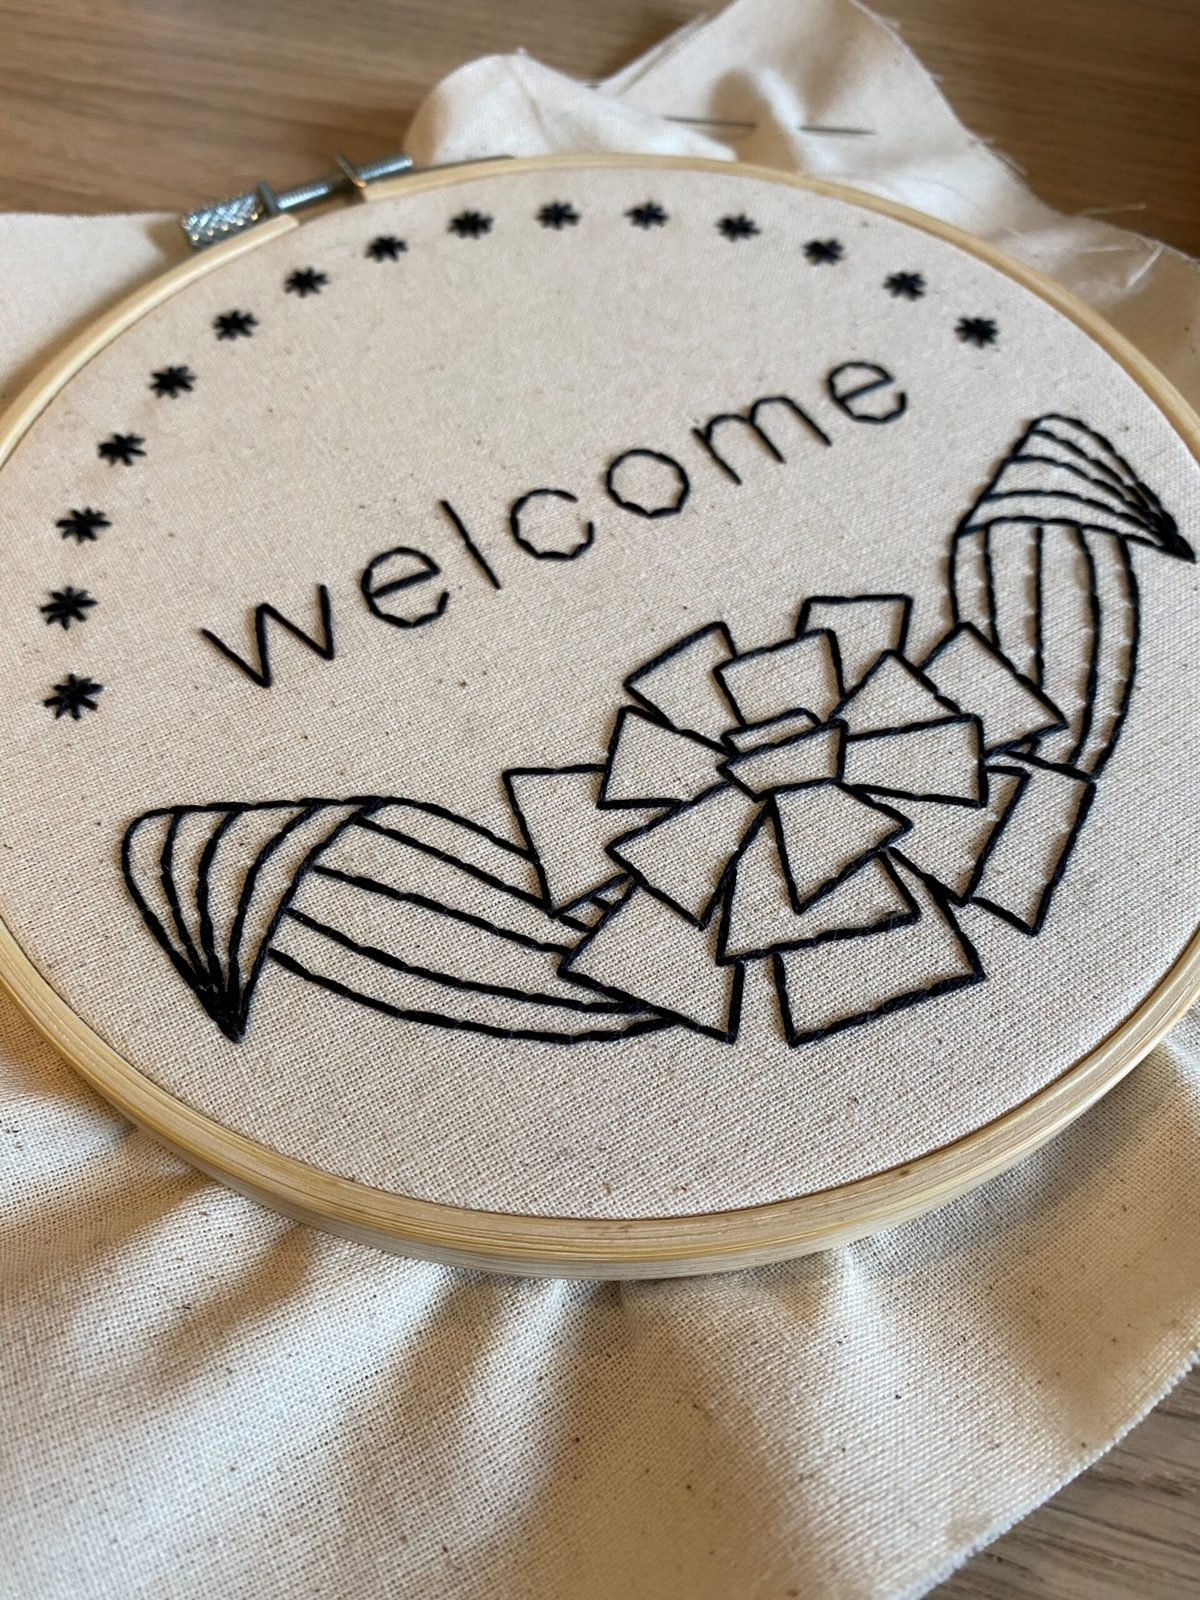 """Image description: Embroidery project in a hoop, photographed at an angle. The embroidery is in black thread and says """"welcome."""""""